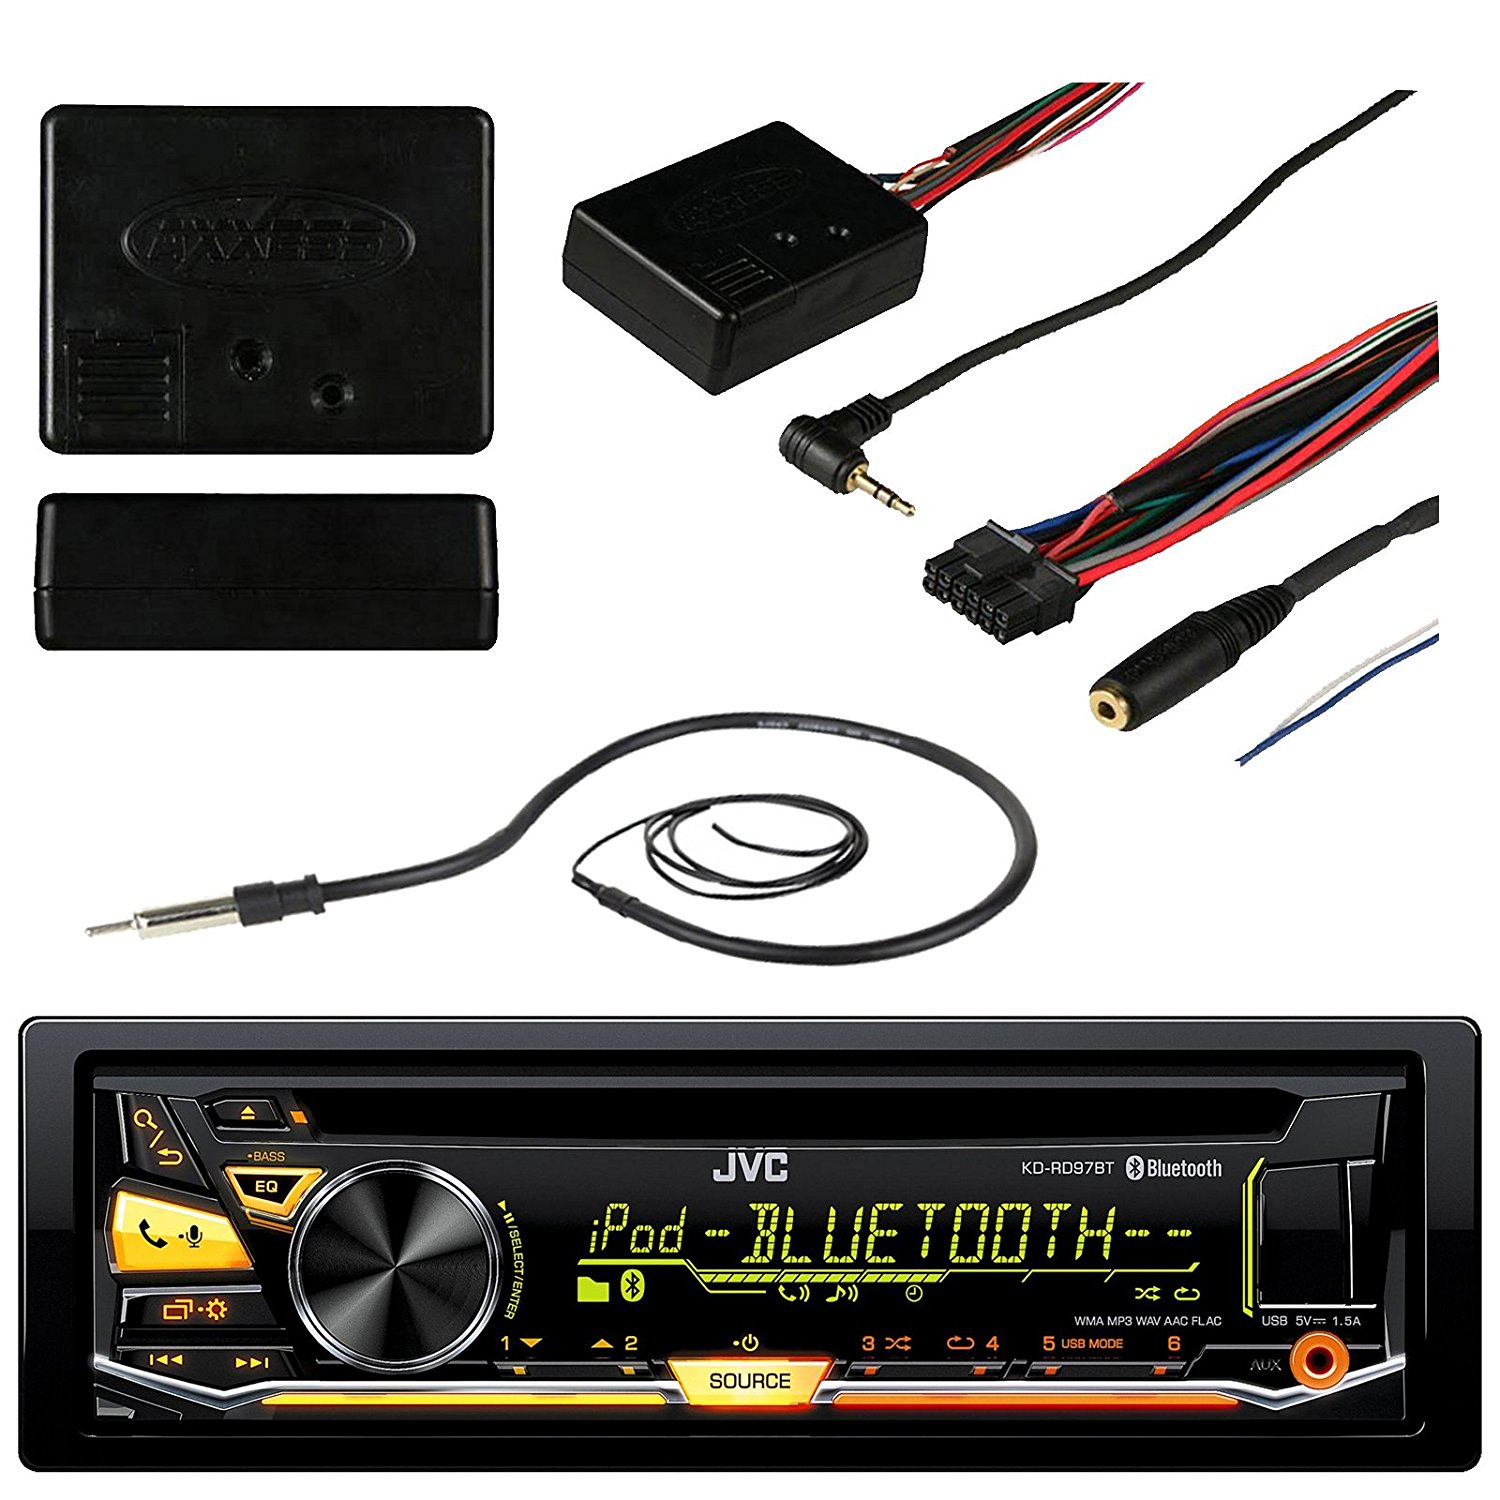 "JVC KD-RD97BT Bluetooth Car CD USB Stereo Receiver Bundle Combo With Metra ASWC-1 Universal Steering Wheel Controller Module, Enrock 22"" AM/FM Radio Antenna"